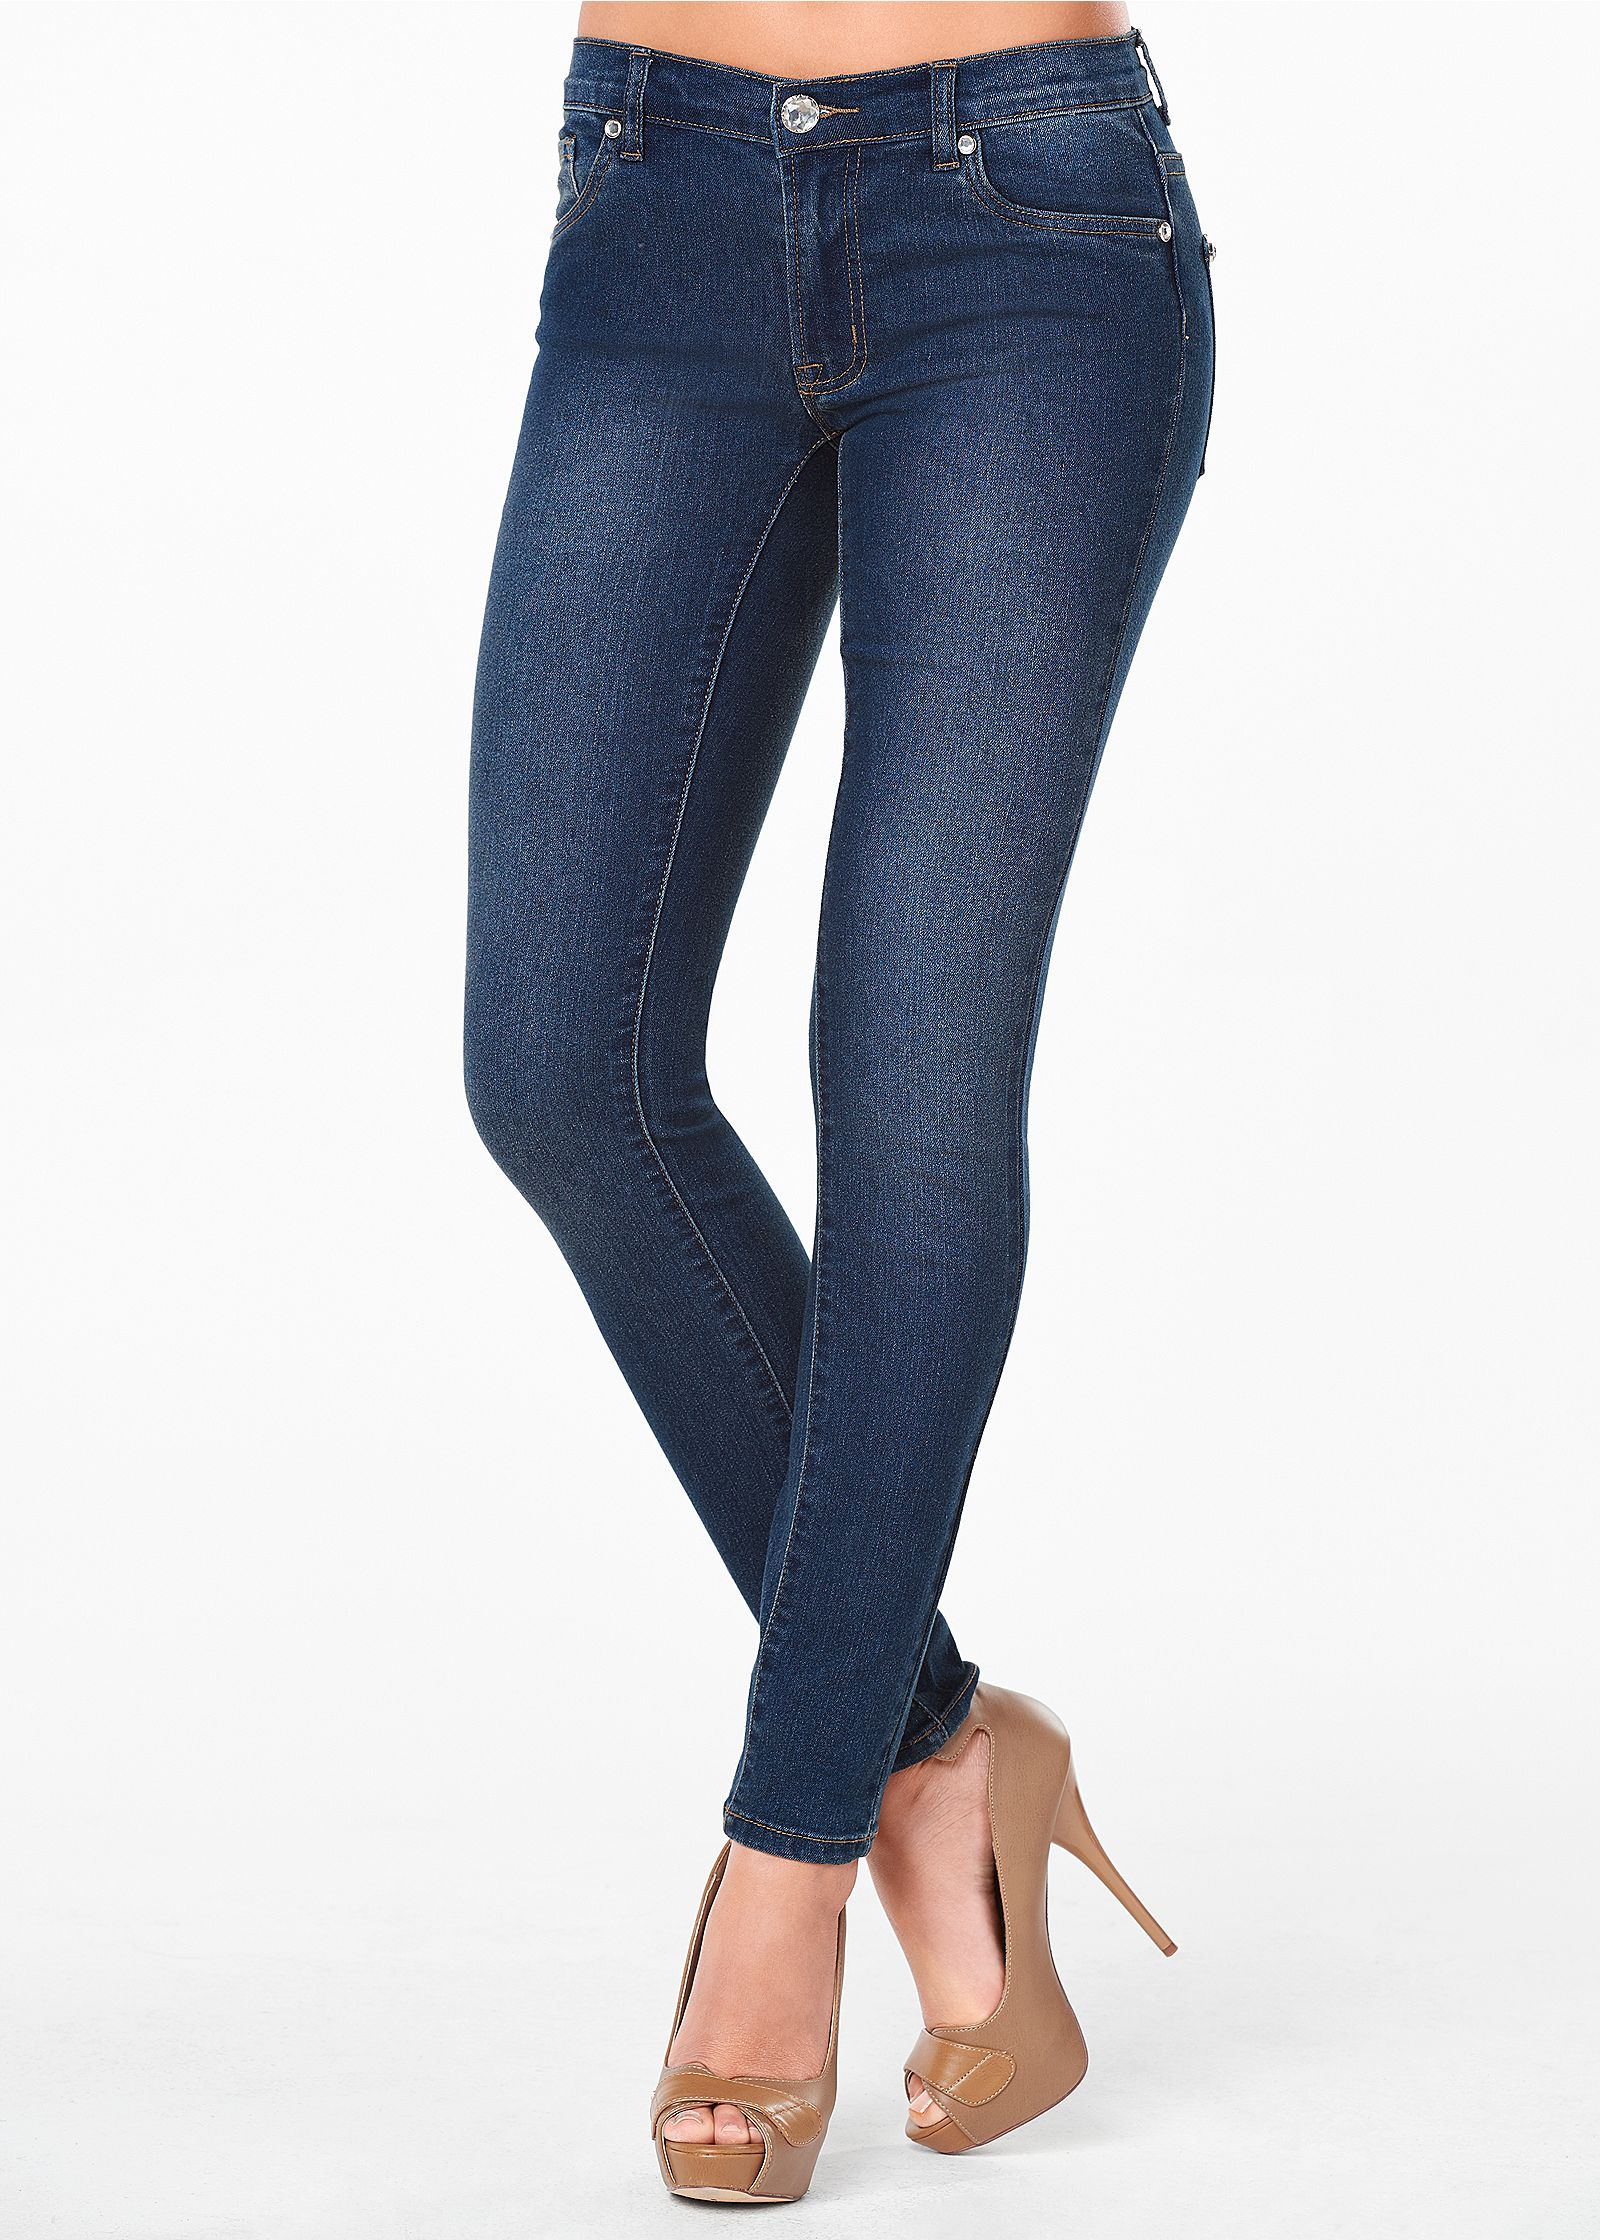 Tall sexy jeans for women